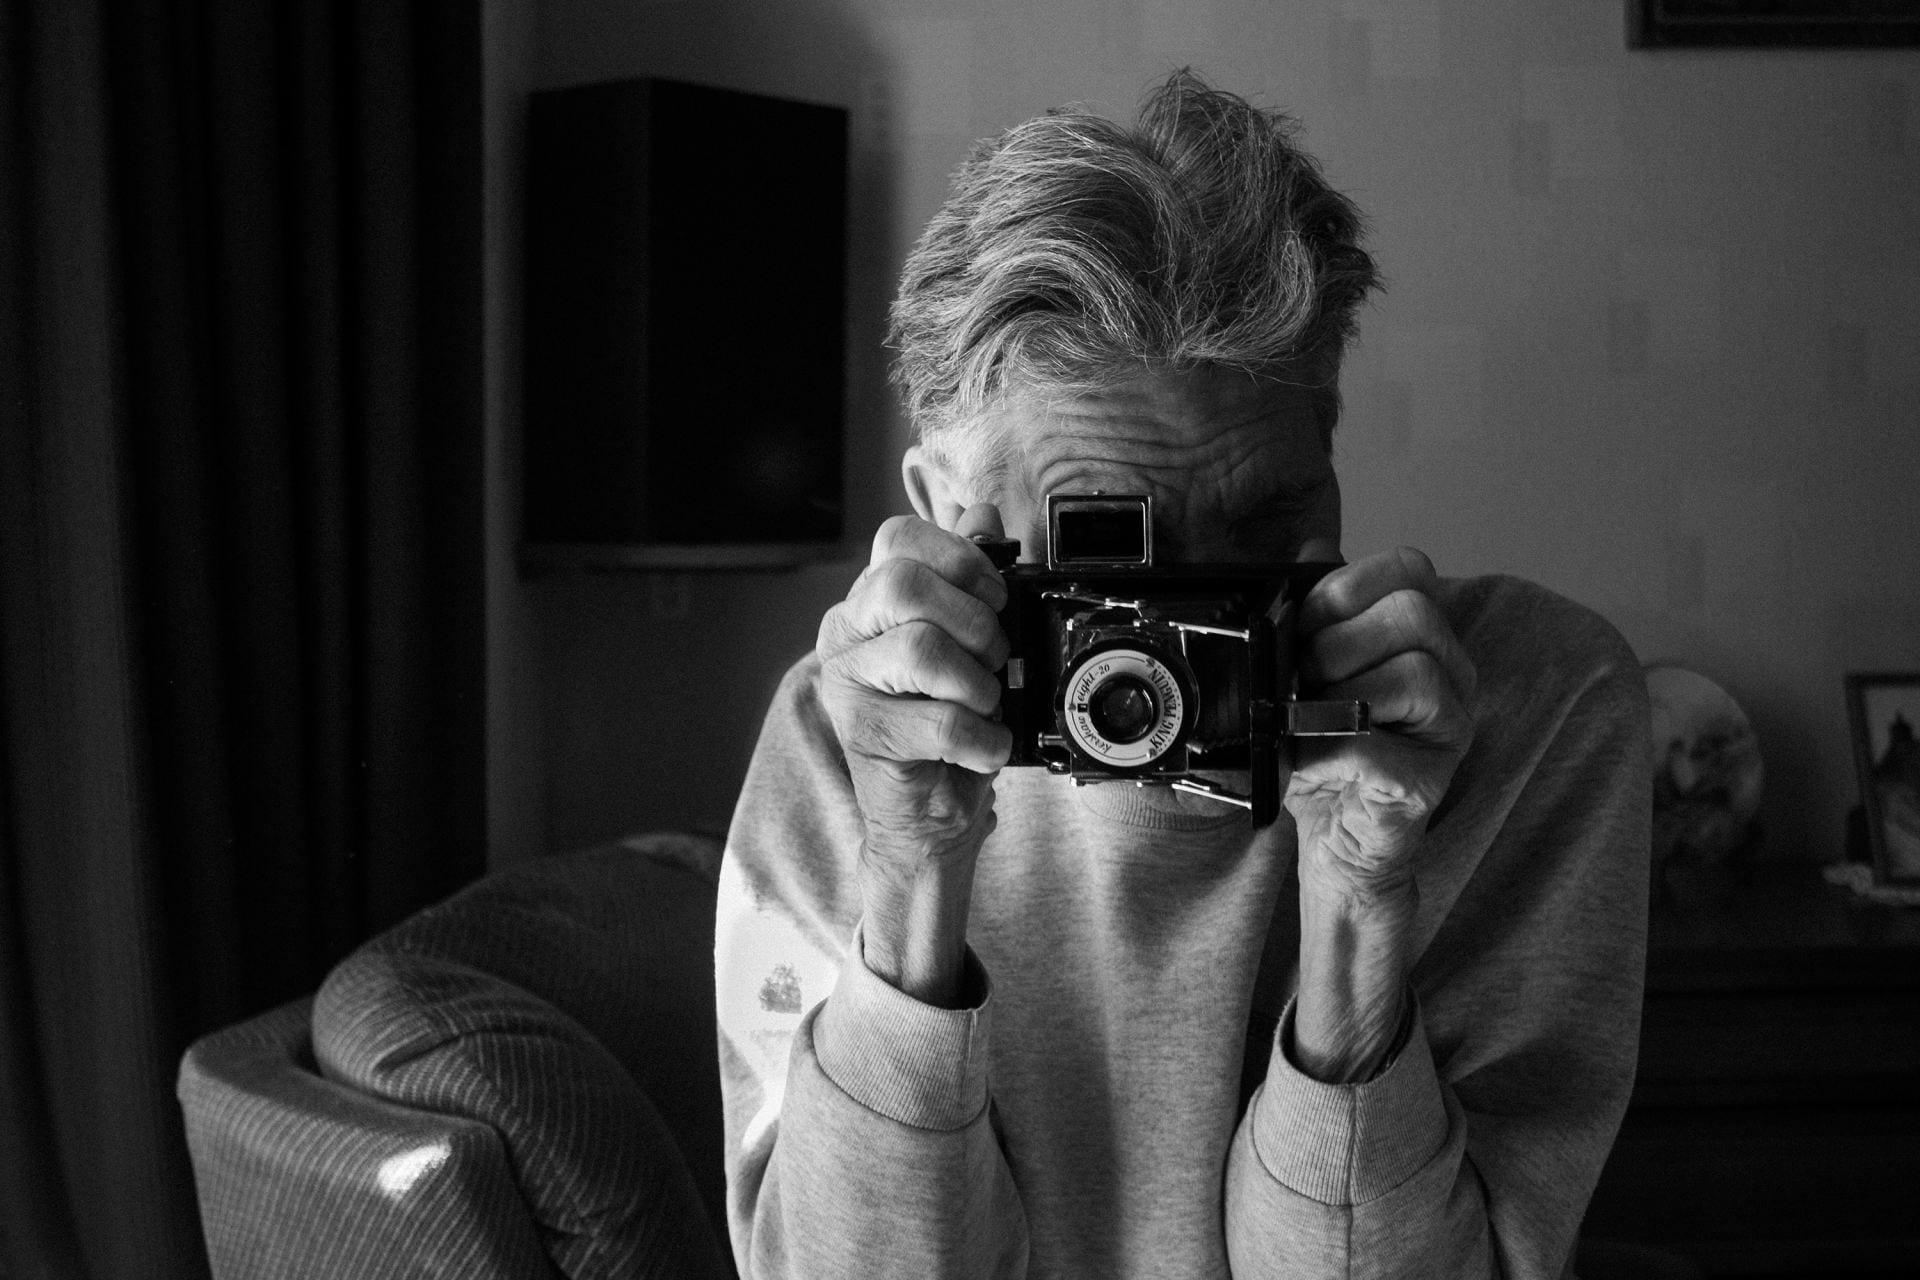 Black and white photograph of man holding a camera.